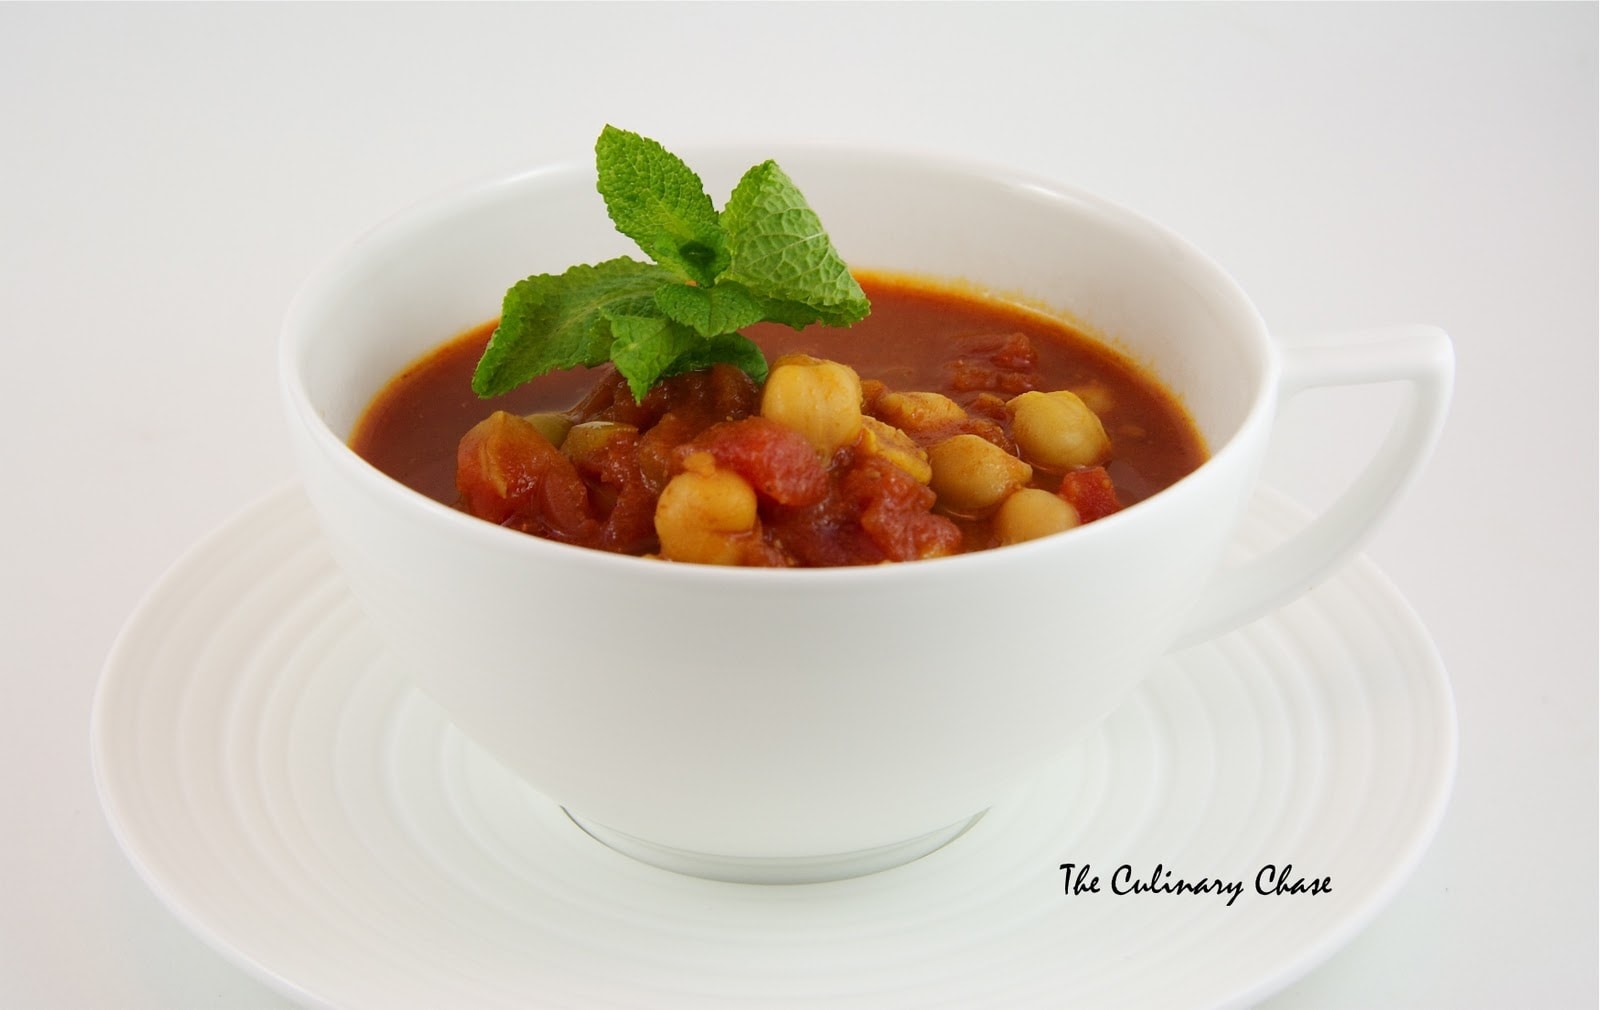 tomato and chickpea soup chickpea and tomato soup tomato chickpea soup ...